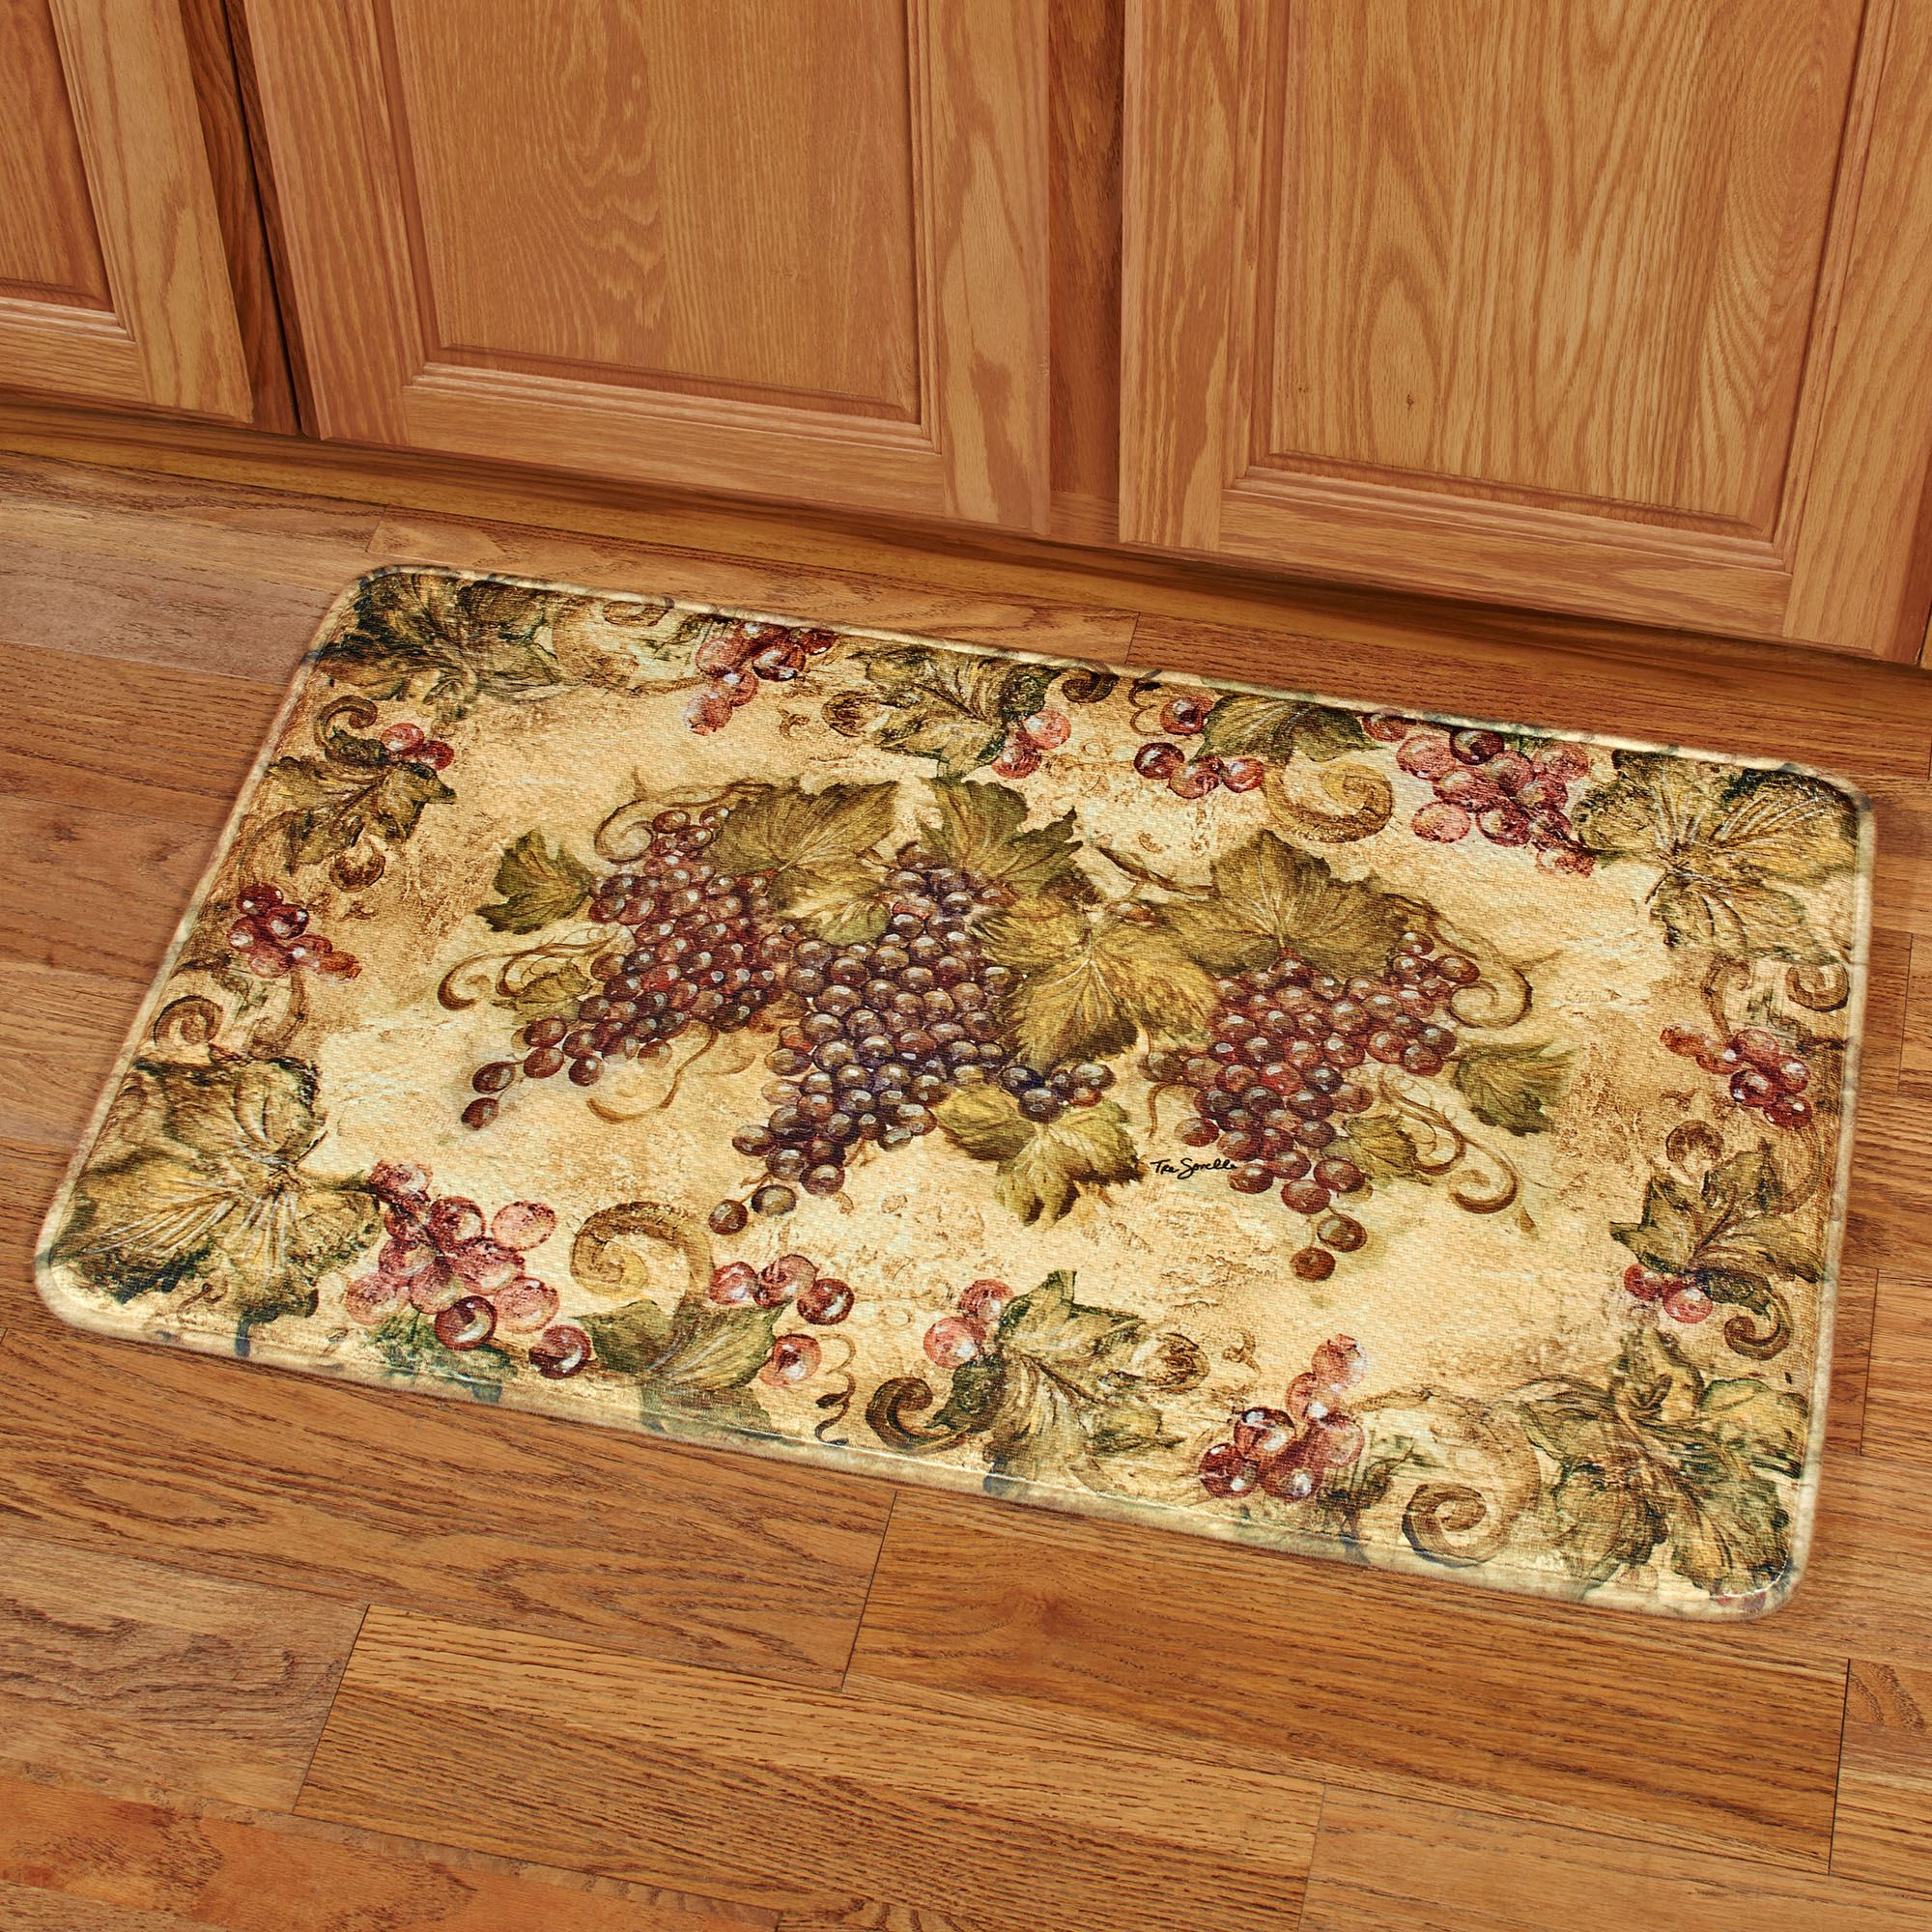 100 Small Grape Design Kitchen Rugs Images The Best Home Decor Ideas